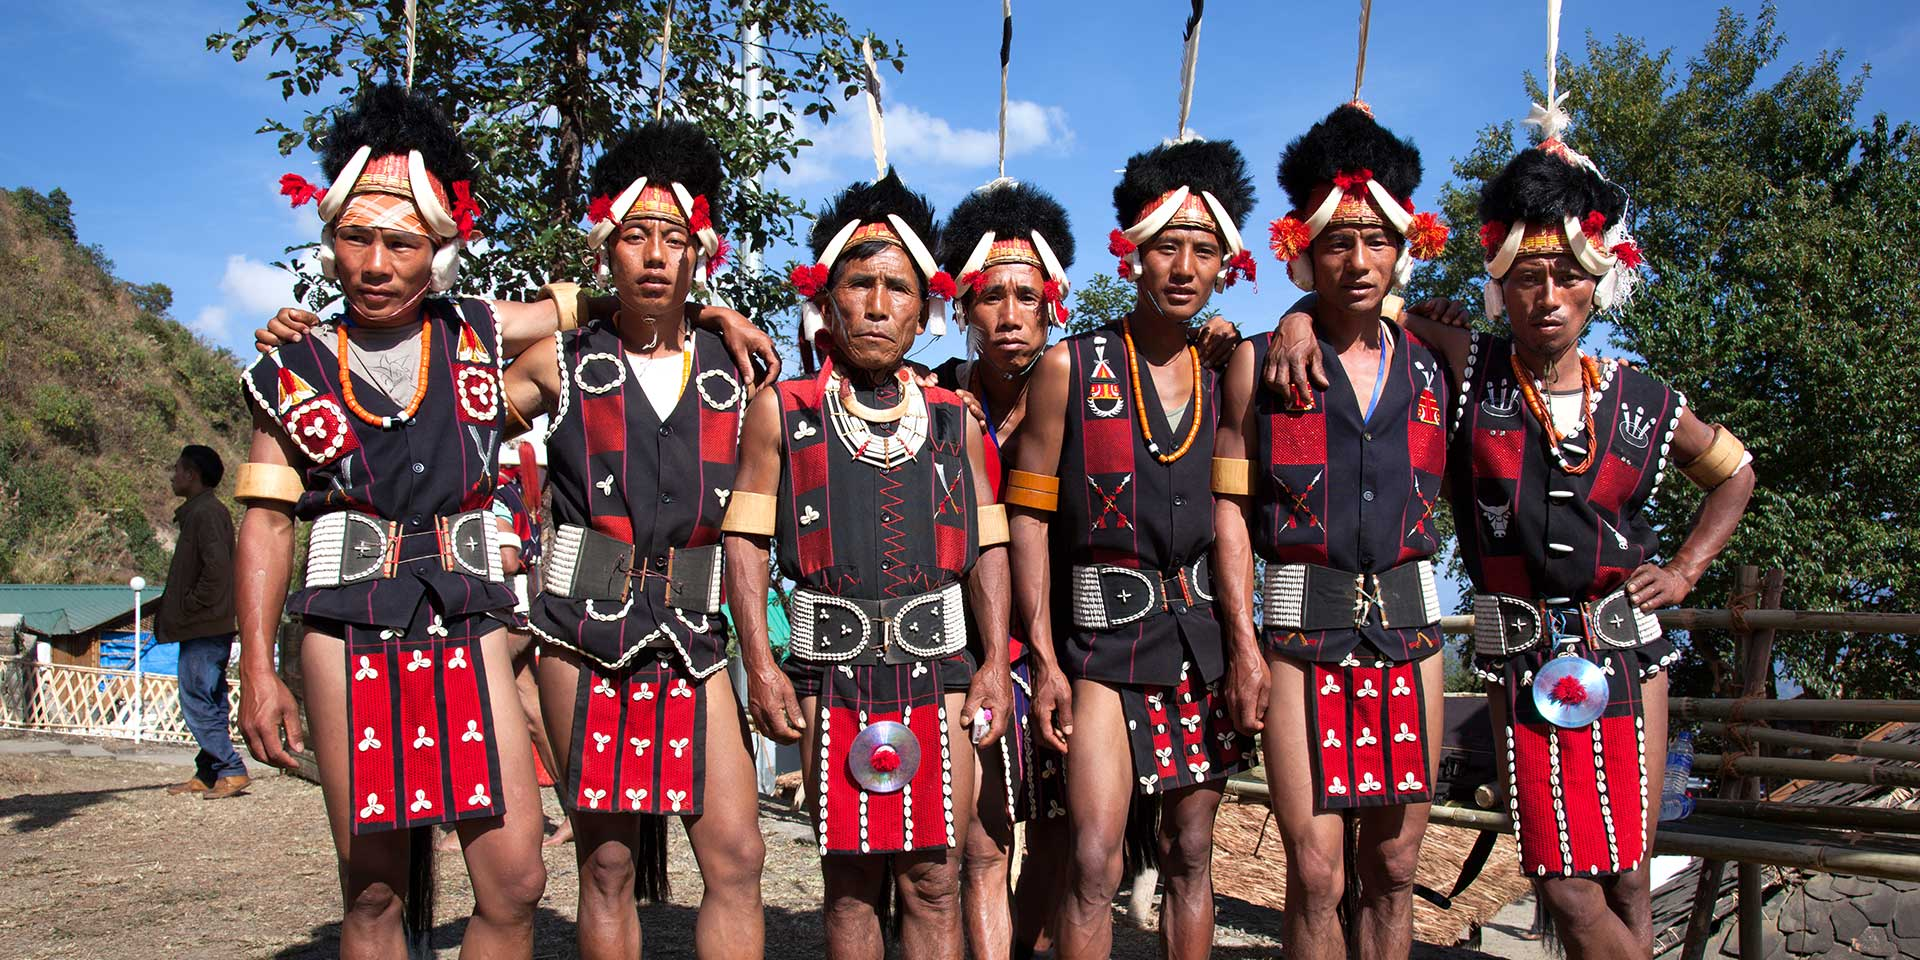 hornbill festival of nagaland,visit hornbill festival of nagaland,nagaland tour package,nagaland travel packages,nagaland holidays,nagaland vacations,trip to nagaland,nagaland packages,nagaland travel guide,nagaland holiday packages